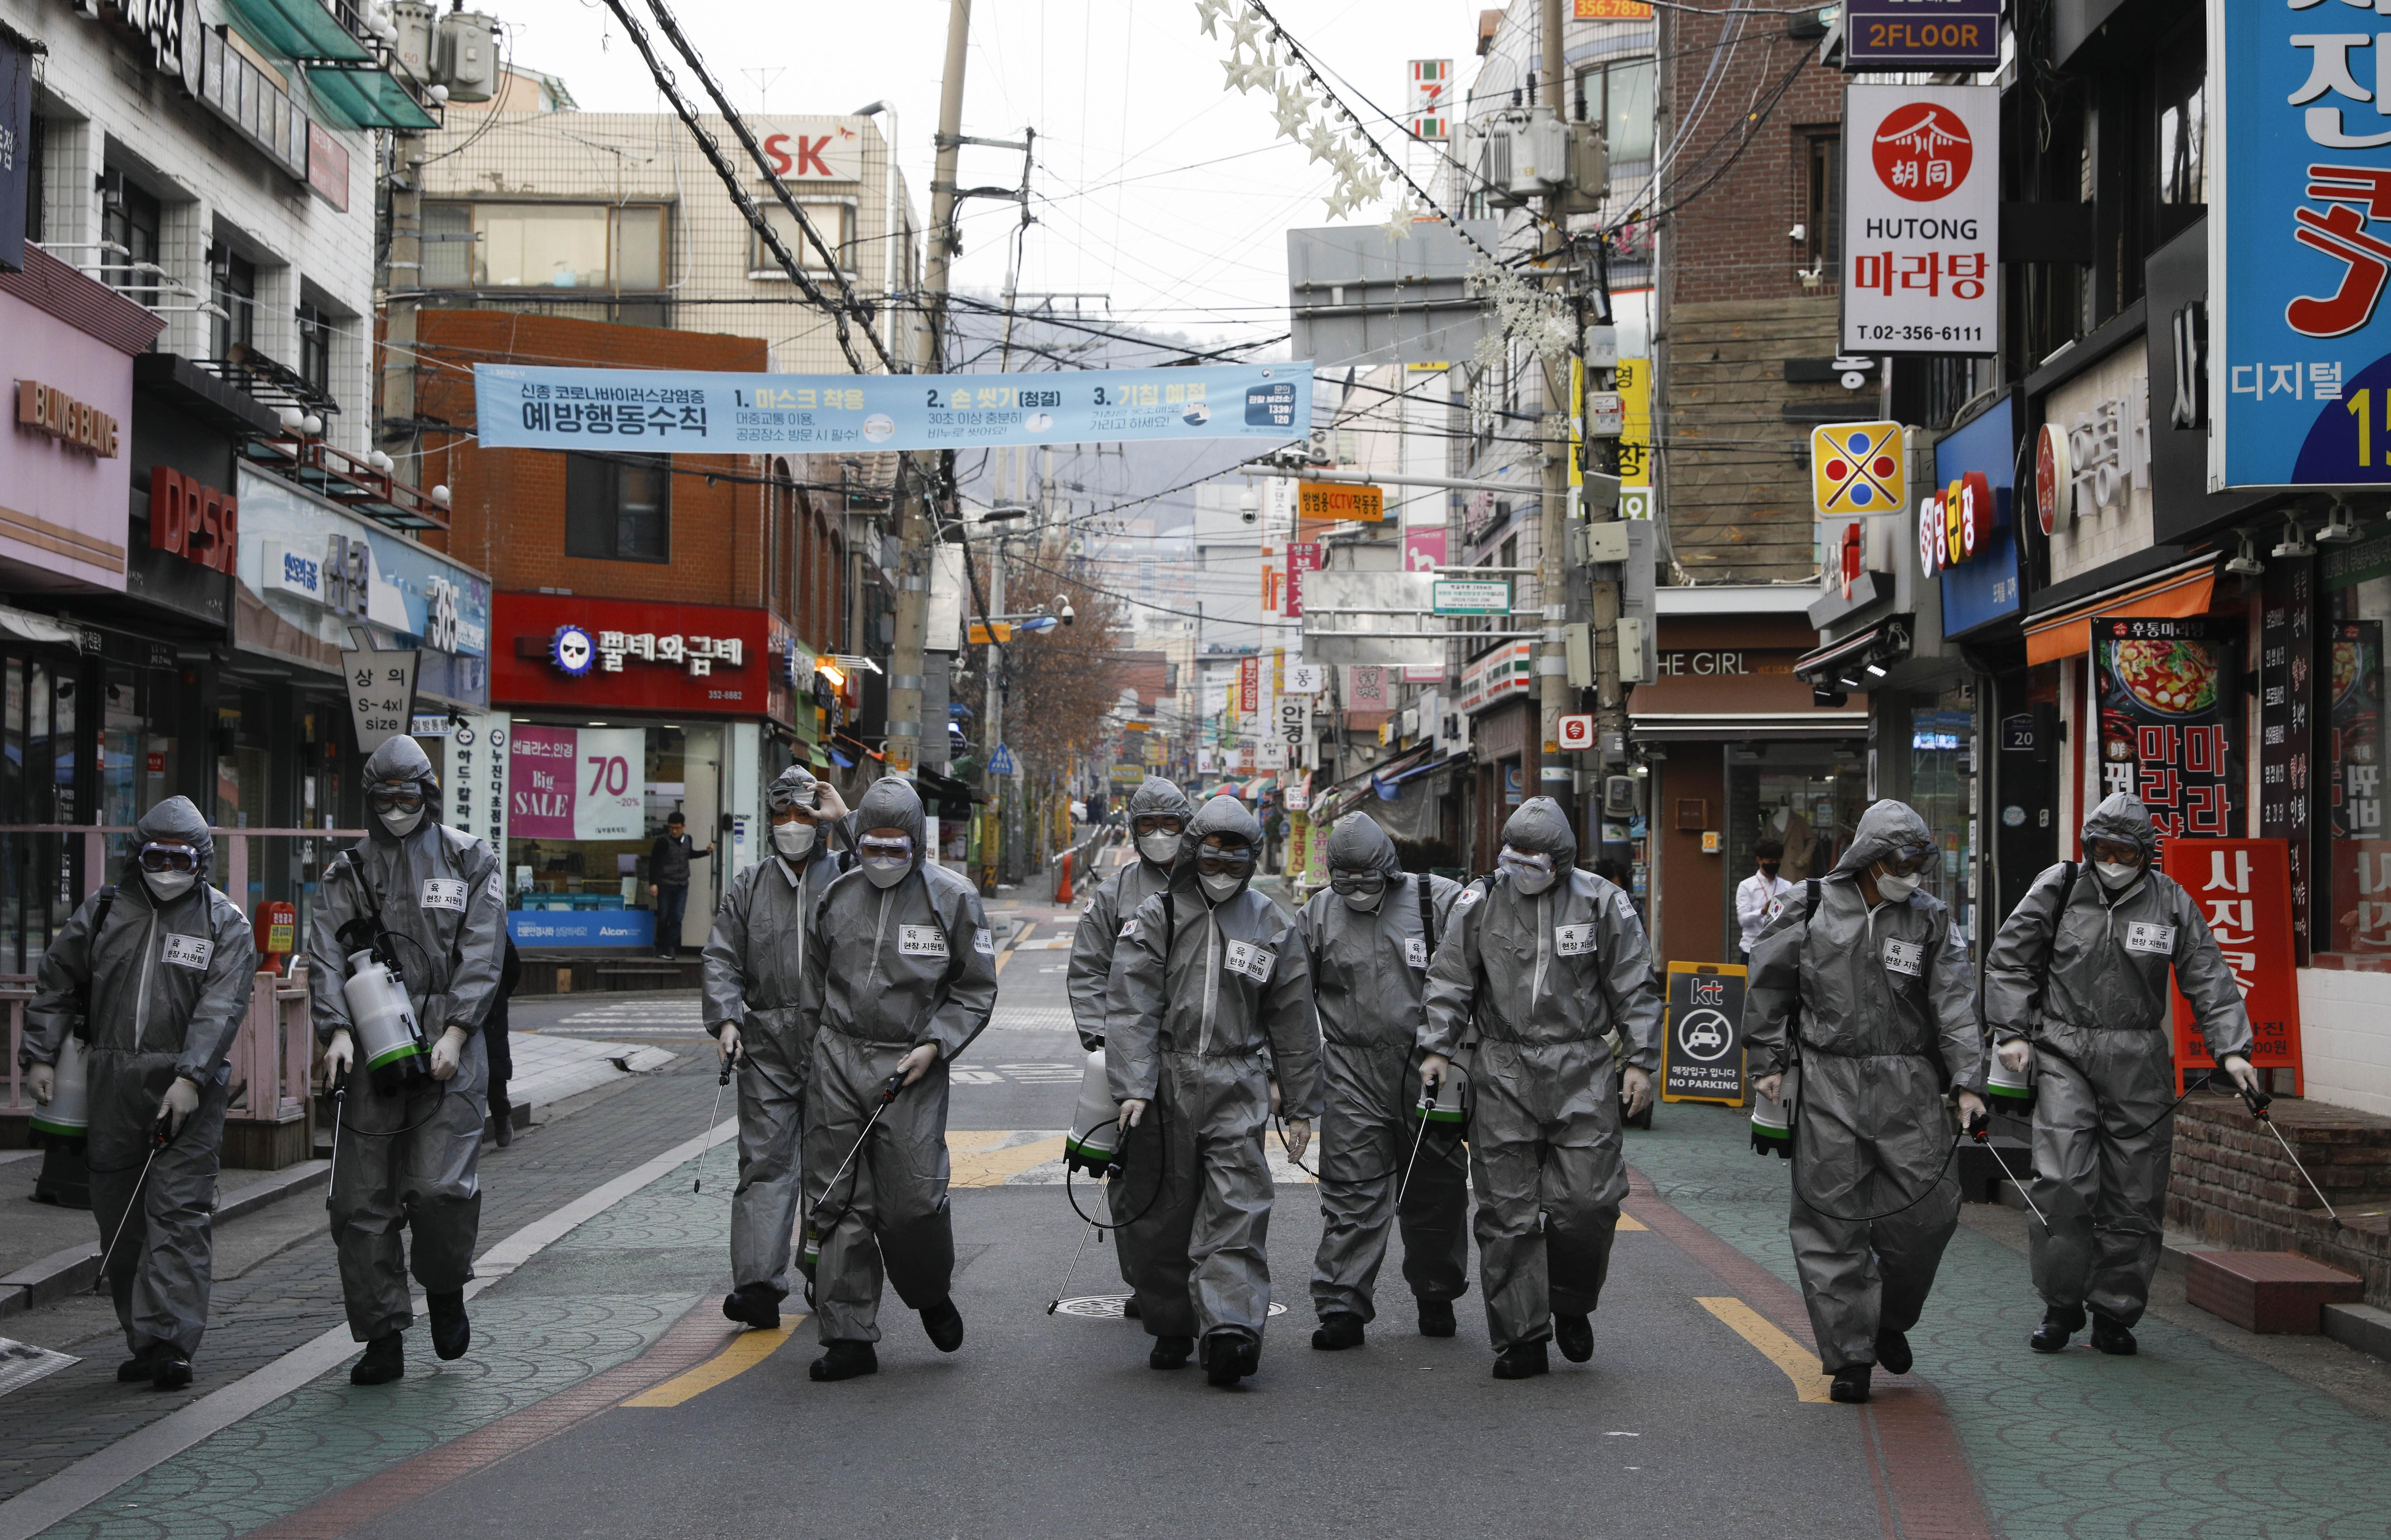 S.Korea reports 47 more COVID-19 cases, 10,284 in total